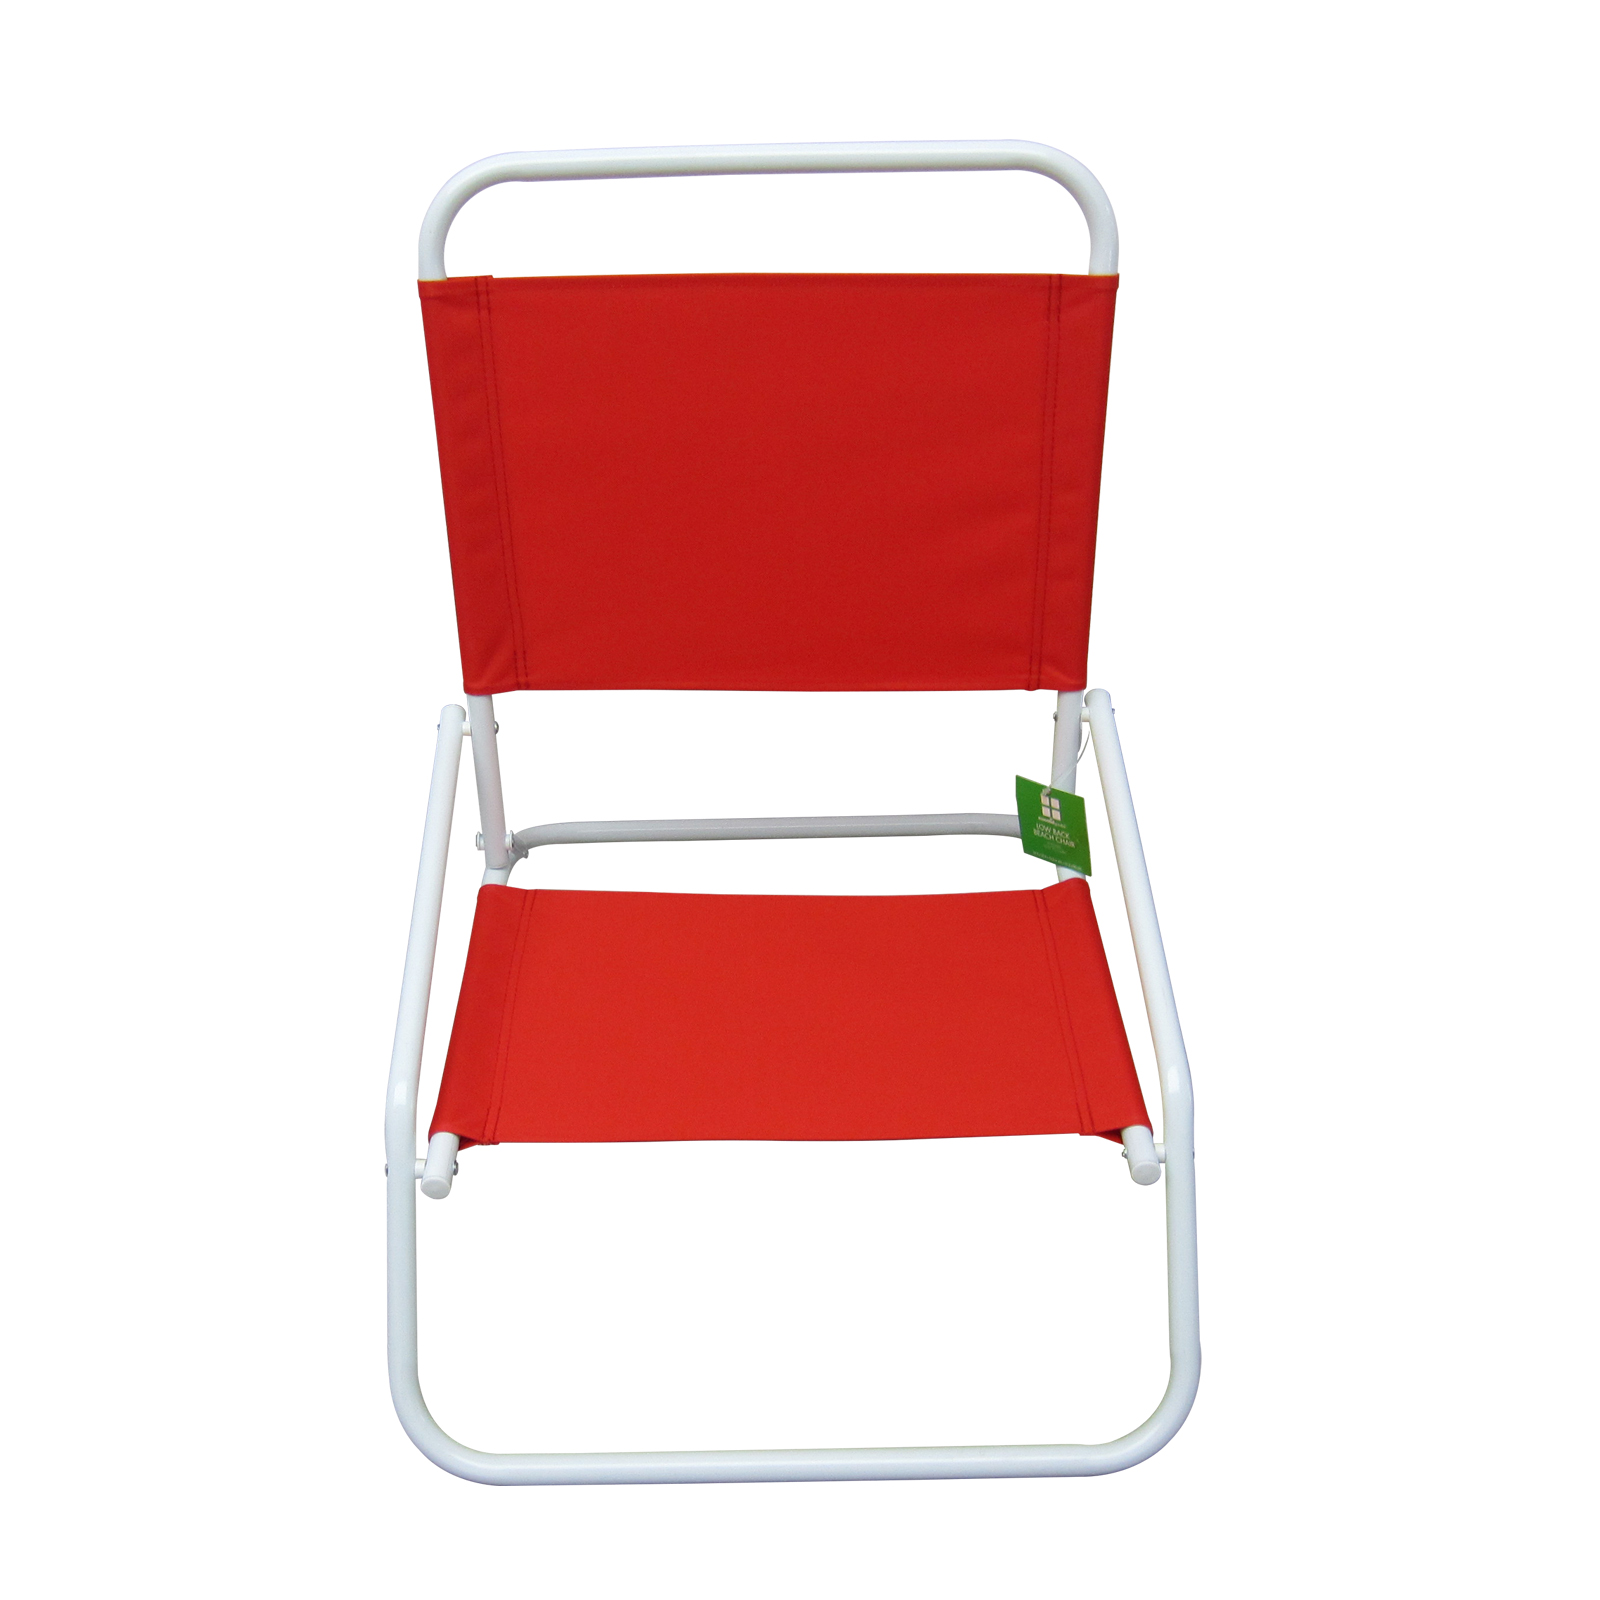 low back lawn chair 9 arm covers target essential garden beach solid red limited